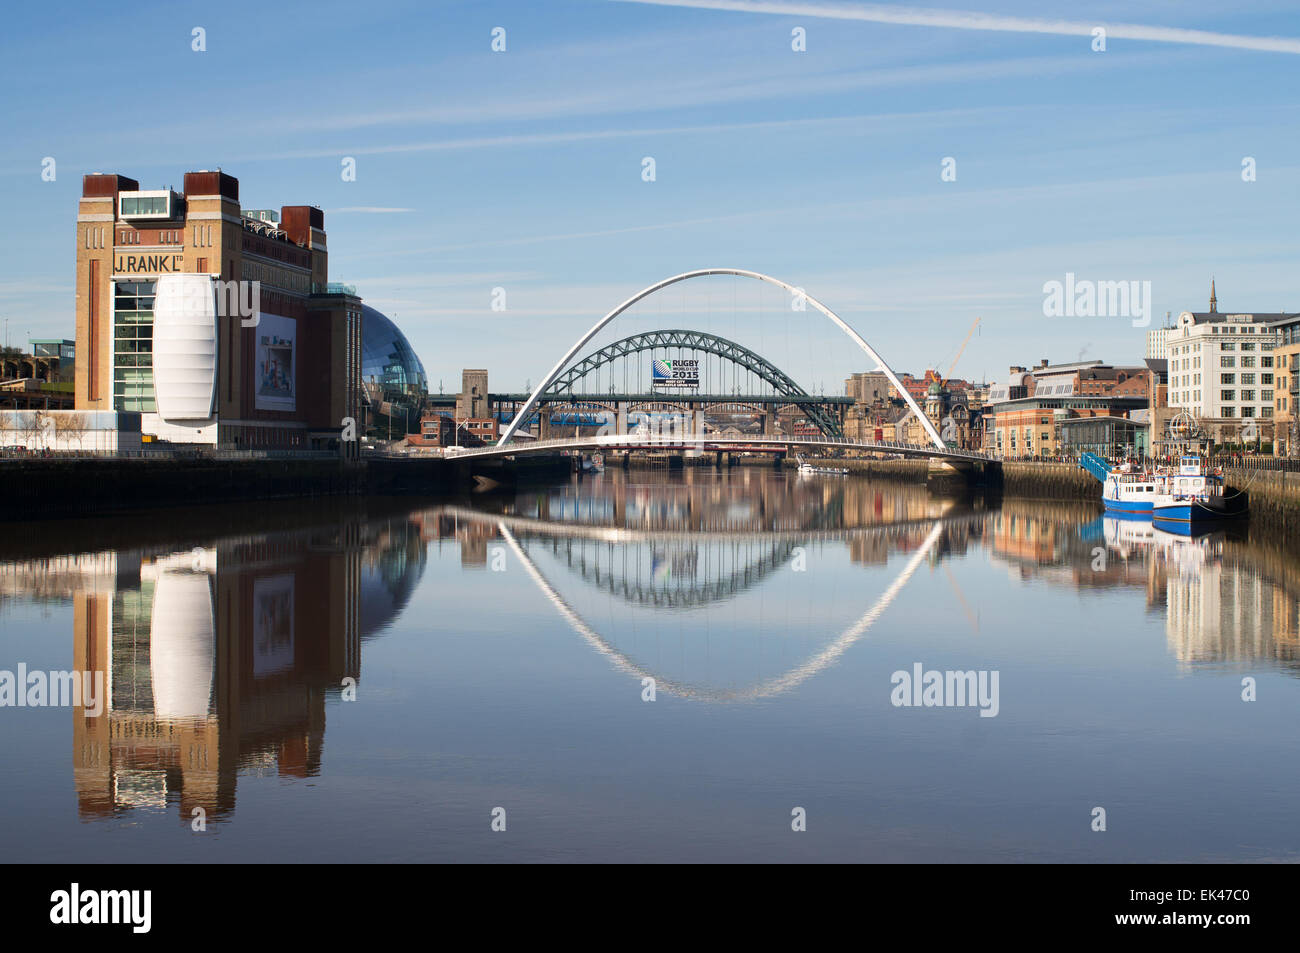 tyne-bridges-and-baltic-gallery-reflecte